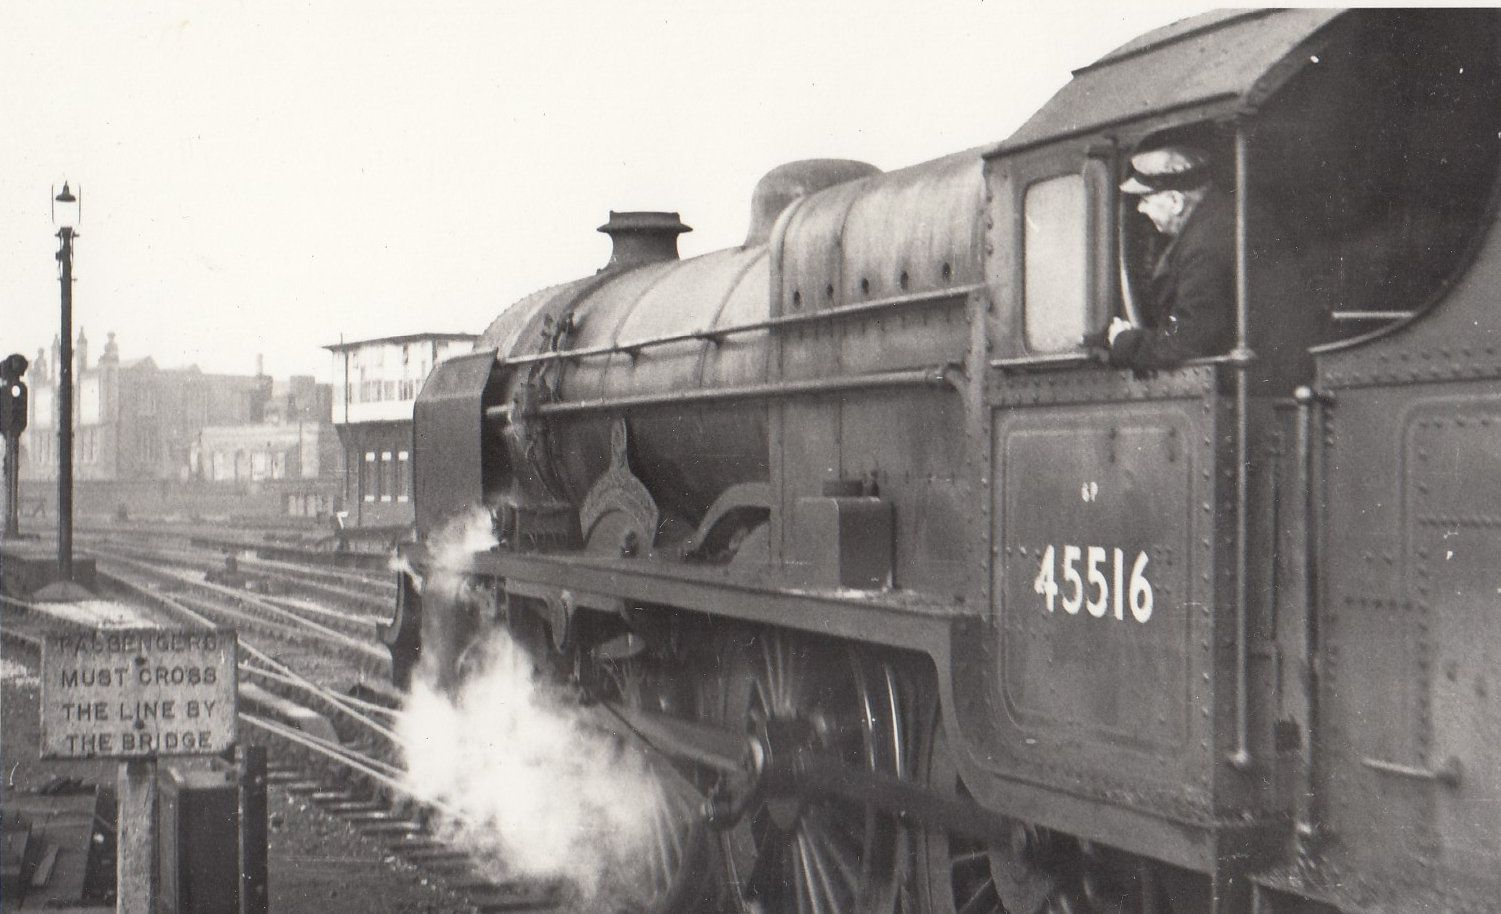 45516-train-at-manchester-exchange-in-1959-vintage-railway-photo-92865-p.jpg